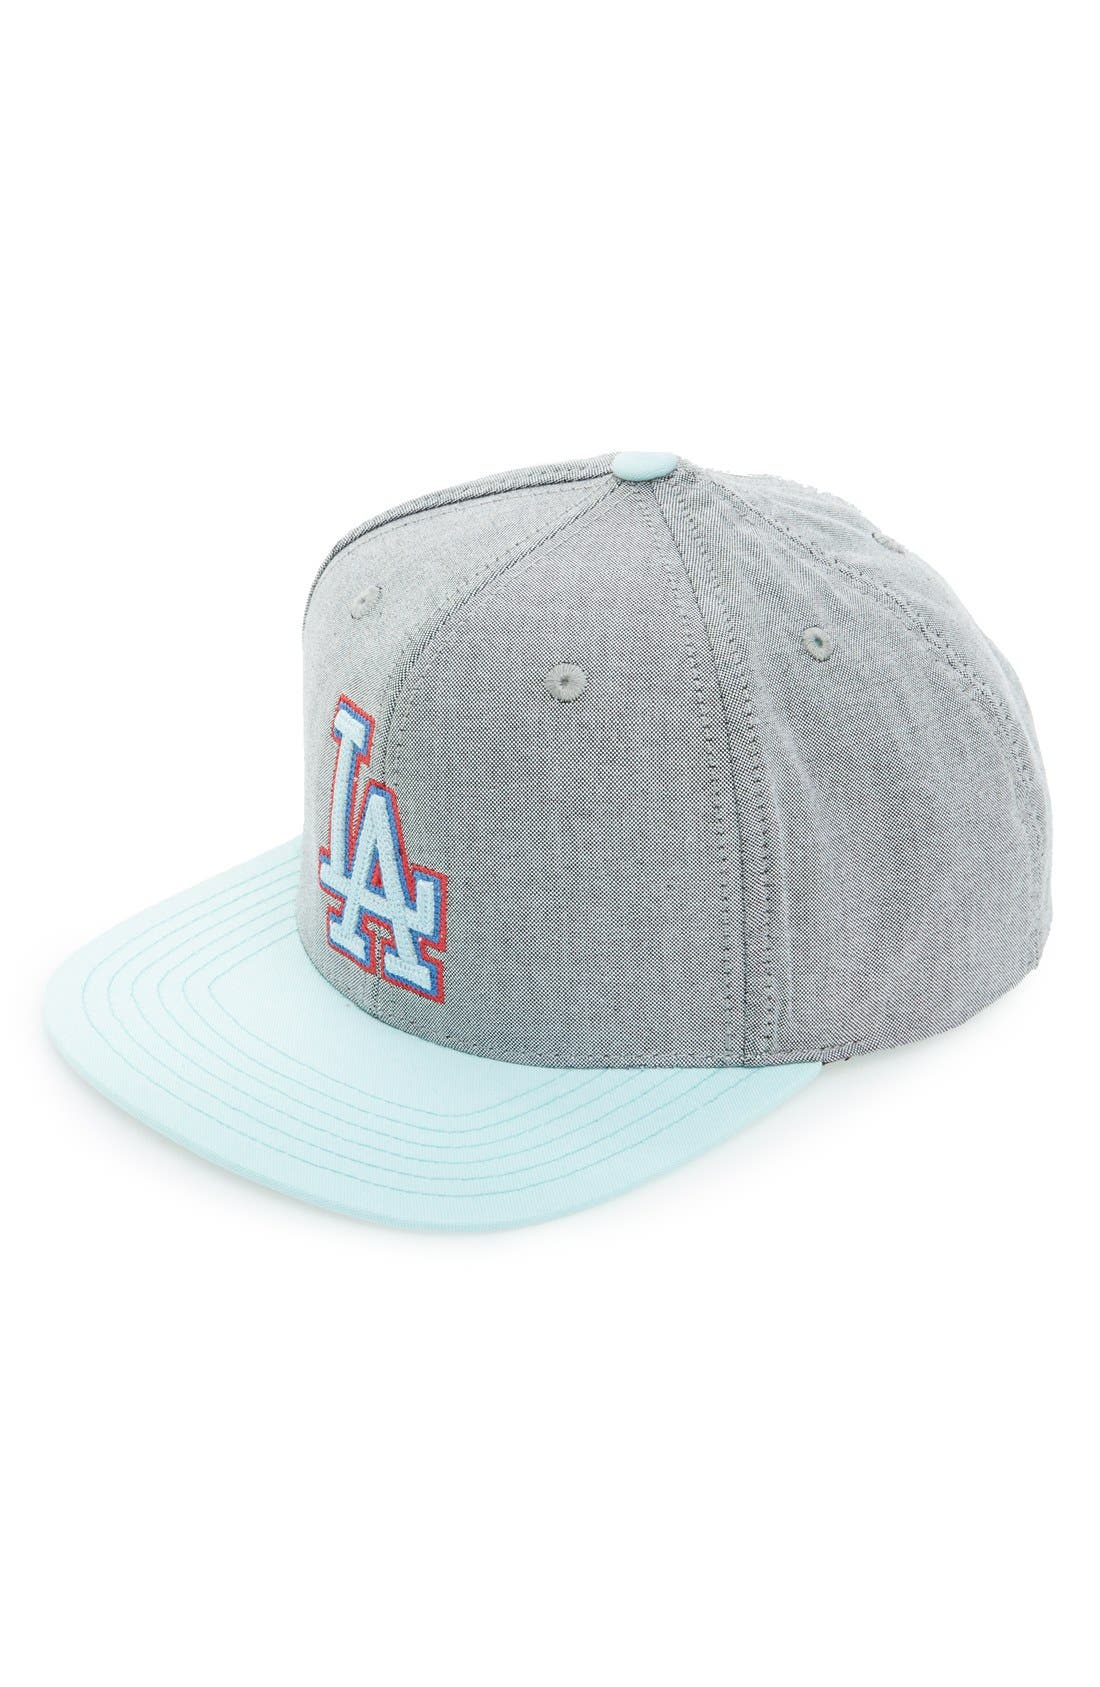 Alternate Image 1 Selected - American Needle 'Los Angeles Dodgers - South Beach' Baseball Cap